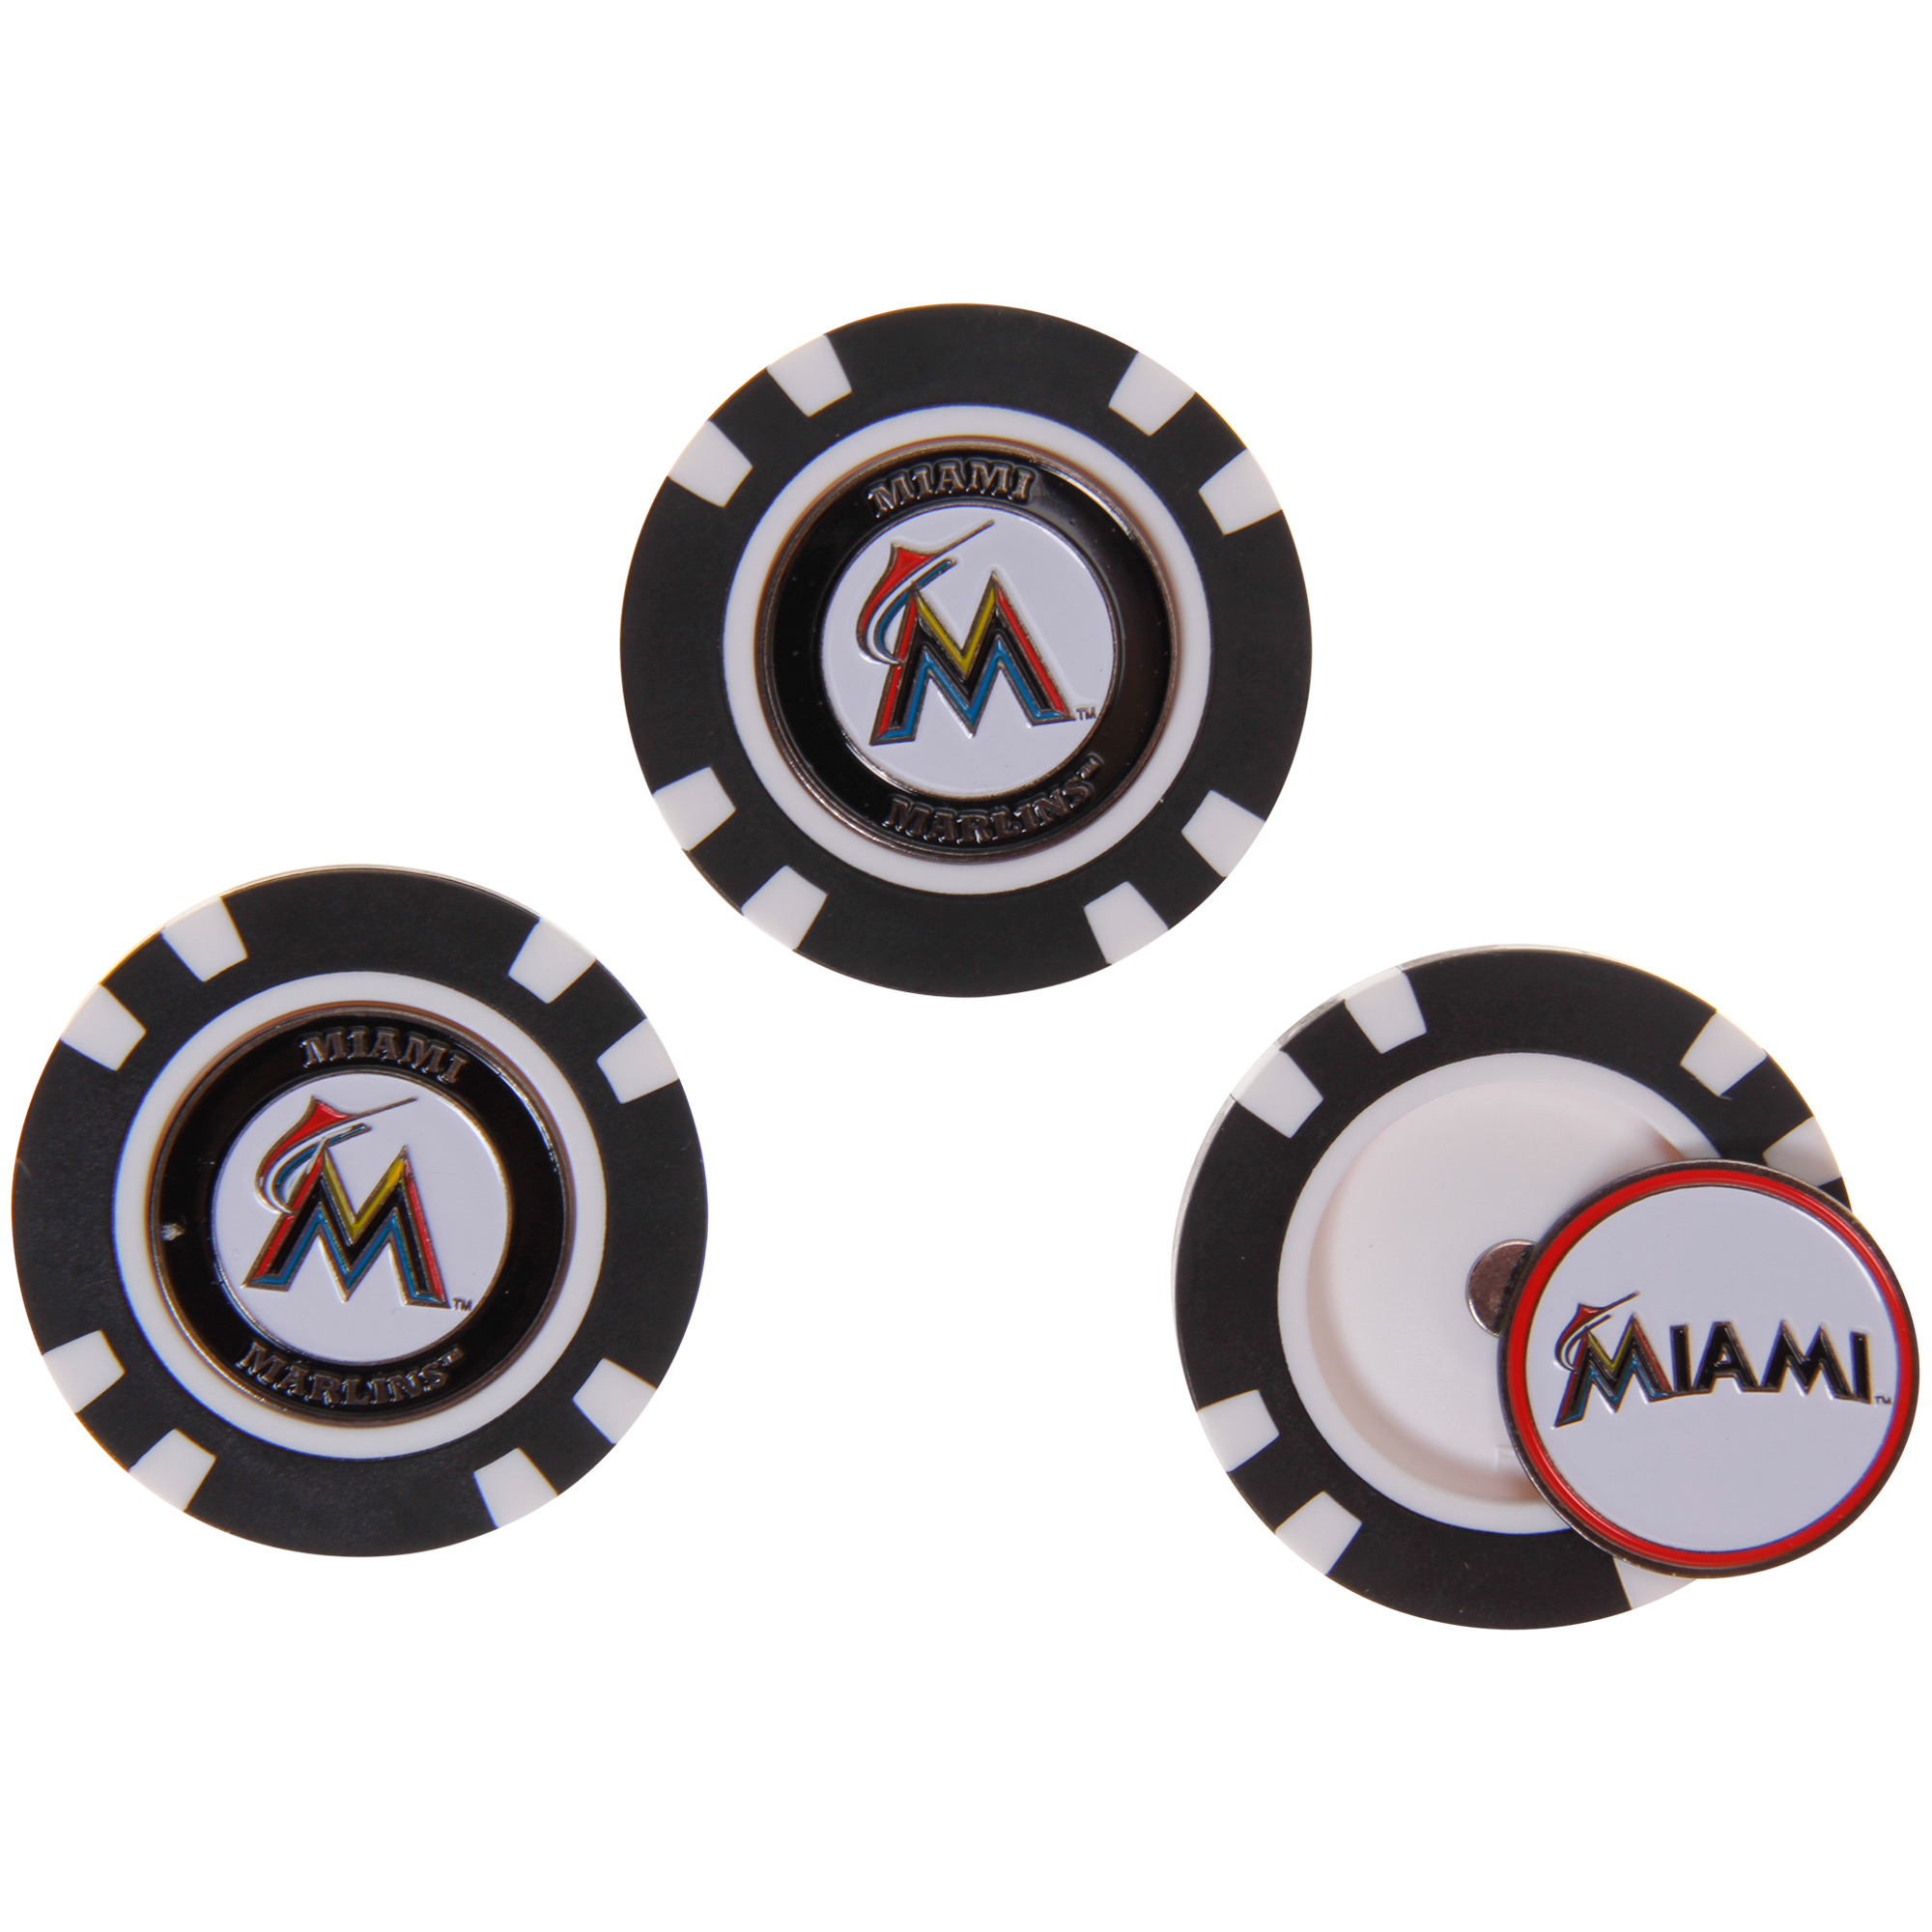 Miami Marlins 3-Pack Poker Chip Golf Ball Markers - No Size